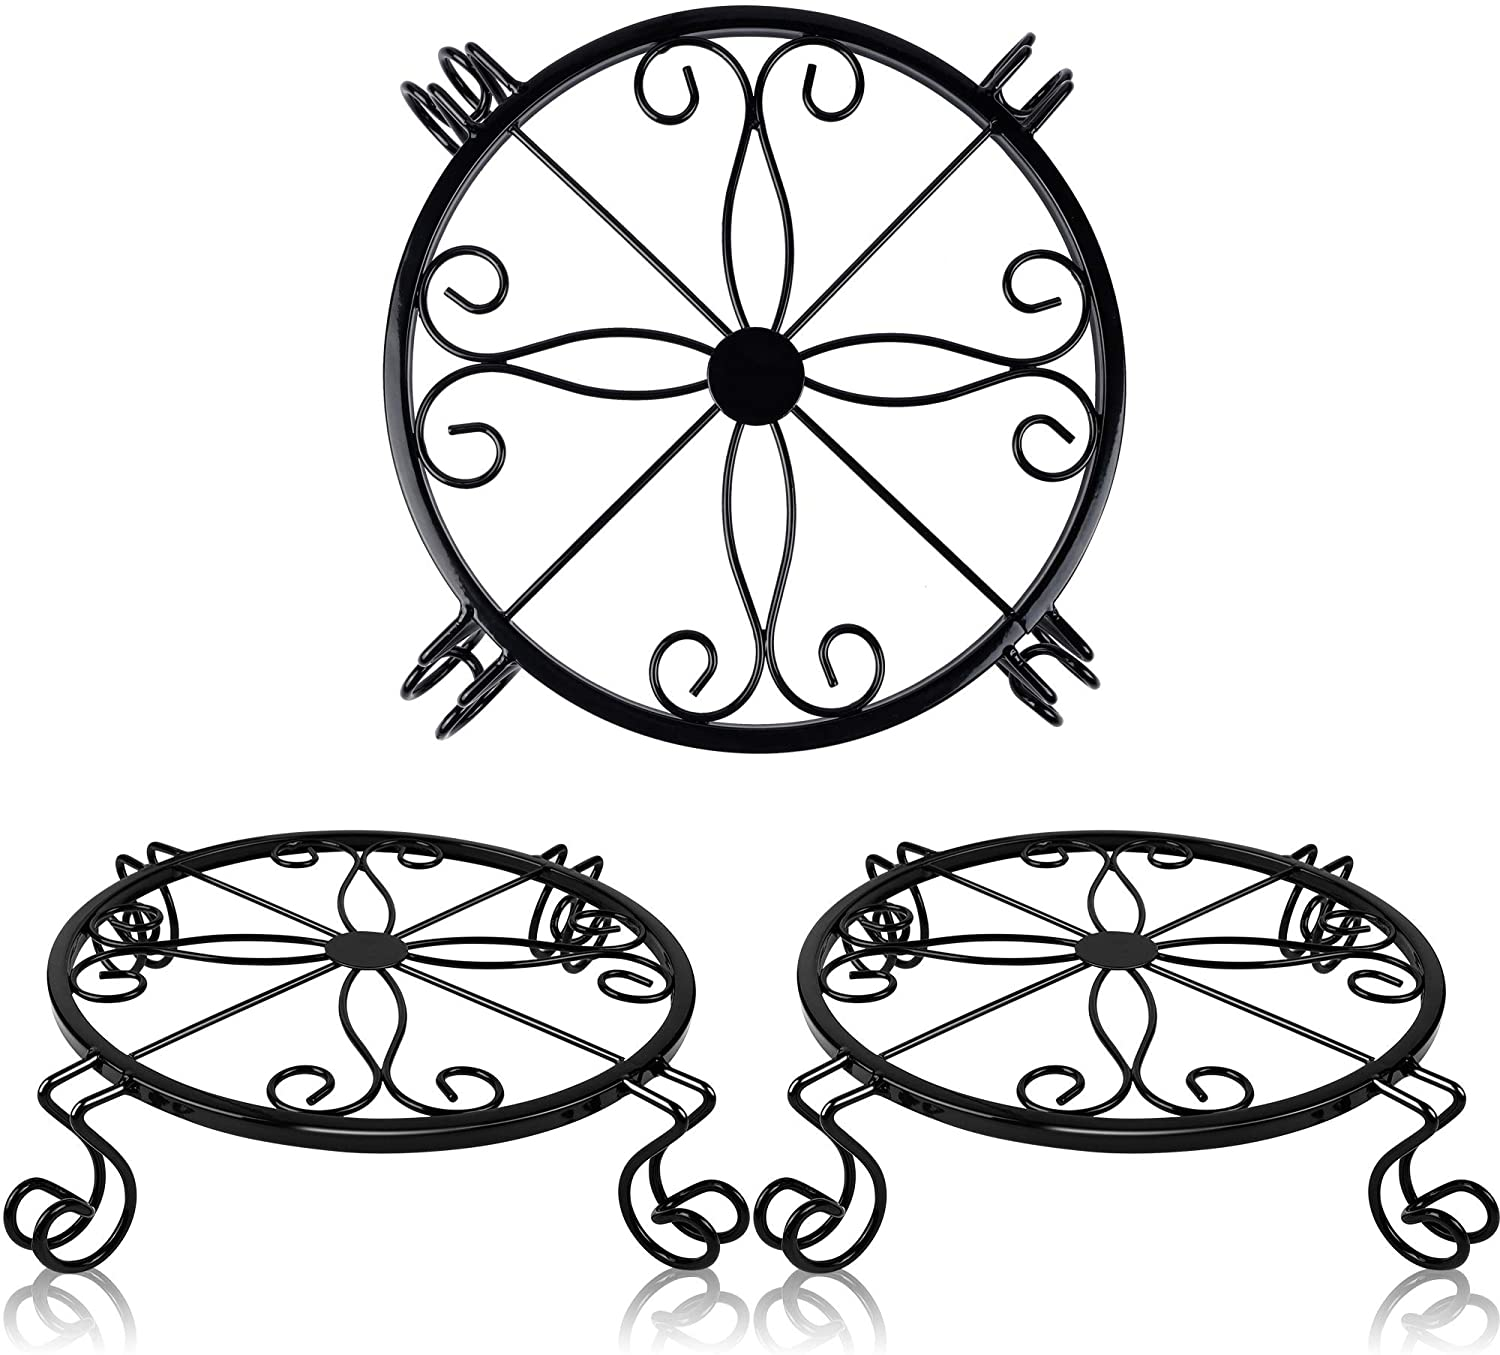 yosager 3 Pack Metal Plant Stands for Flower Pot, Heavy Duty Potted Holder, Indoor Outdoor Metal Rustproof Iron Garden Container Round Supports Rack for Planter